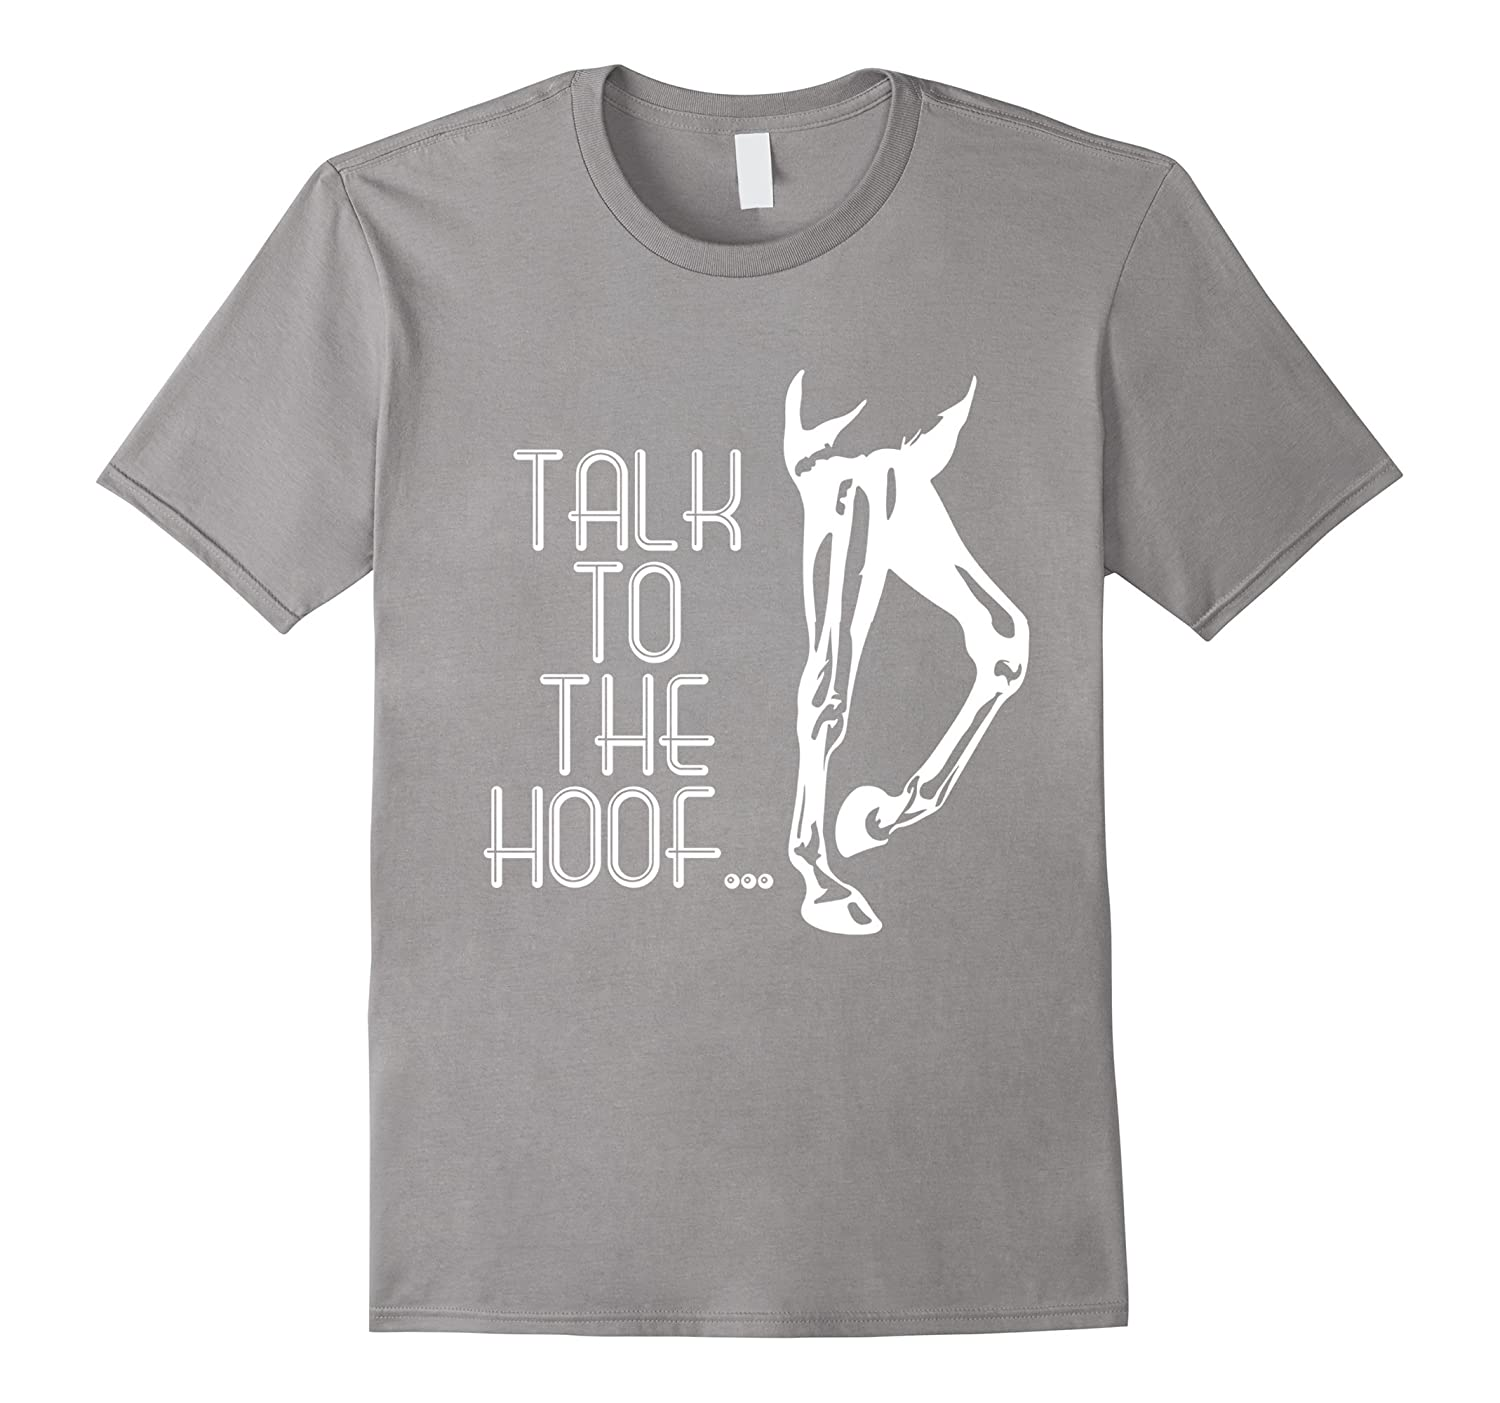 e914ca477 Men's Talk To The Hoof Funny Pet Horse Riding Lovers Gift T-Shirt 2XL  Slate: Amazon.co.uk: Clothing